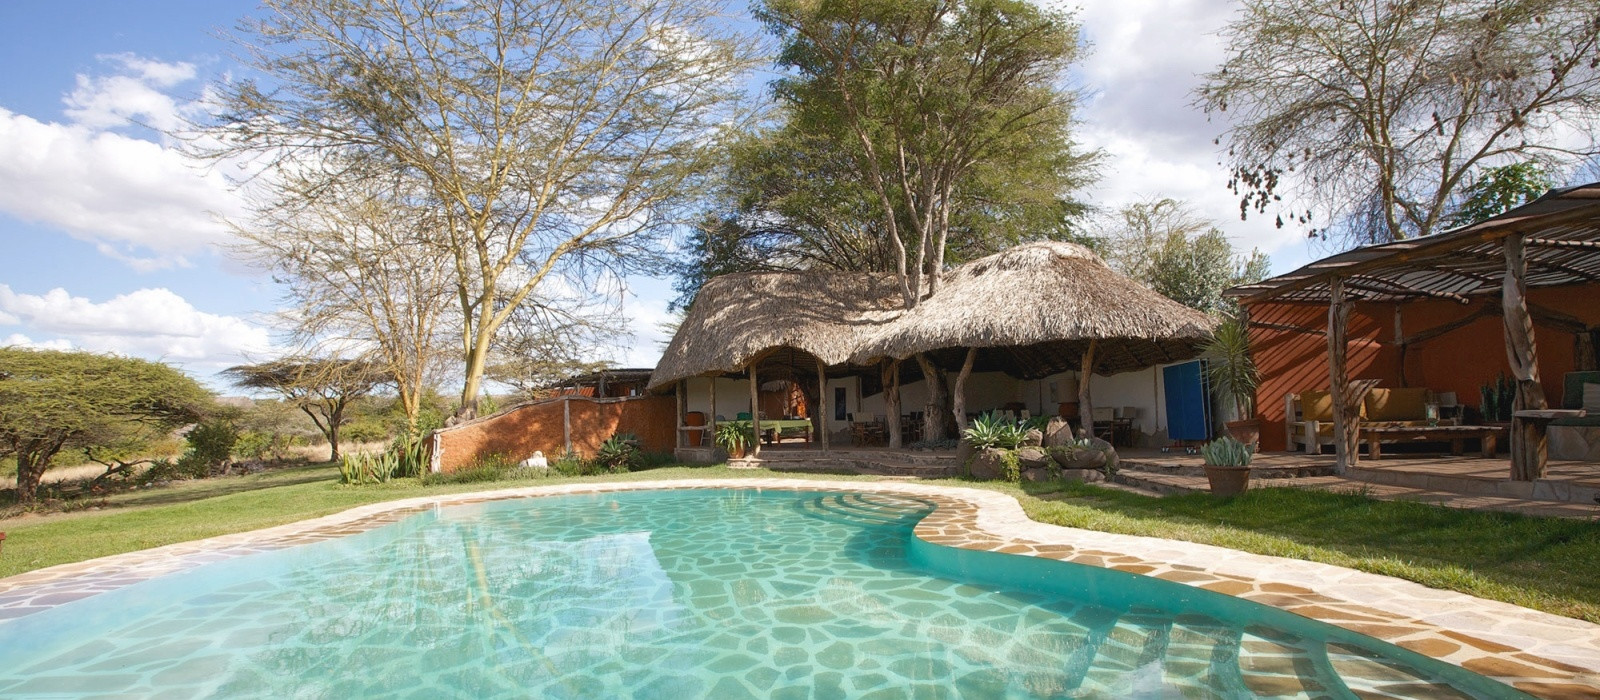 Hotel Lewa Safari Camp Kenia